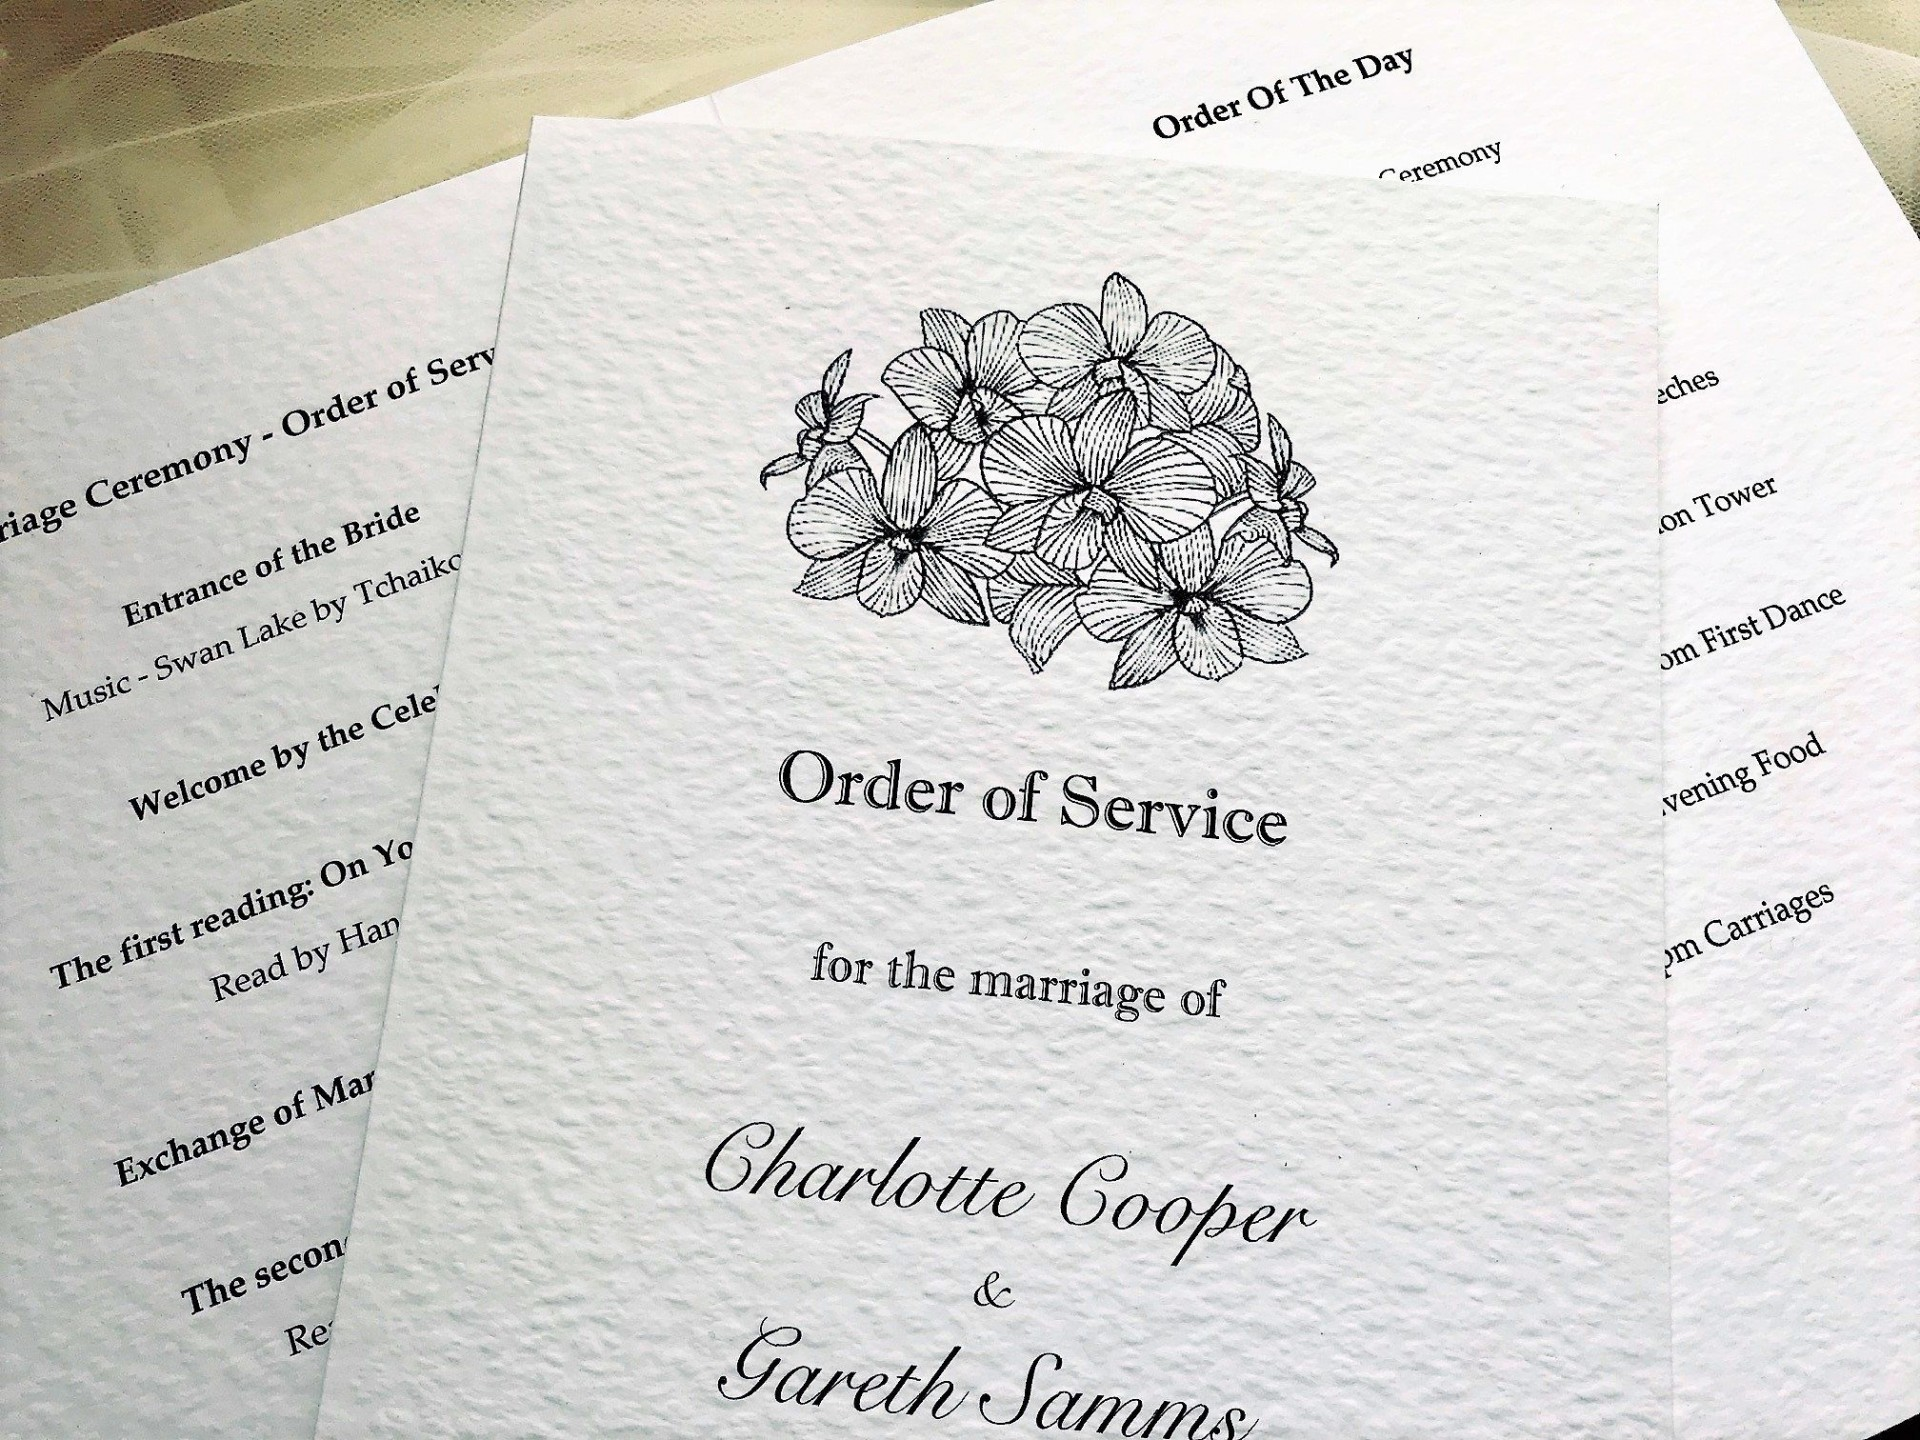 004 Fearsome Church Wedding Order Of Service Template Uk High Def 1920